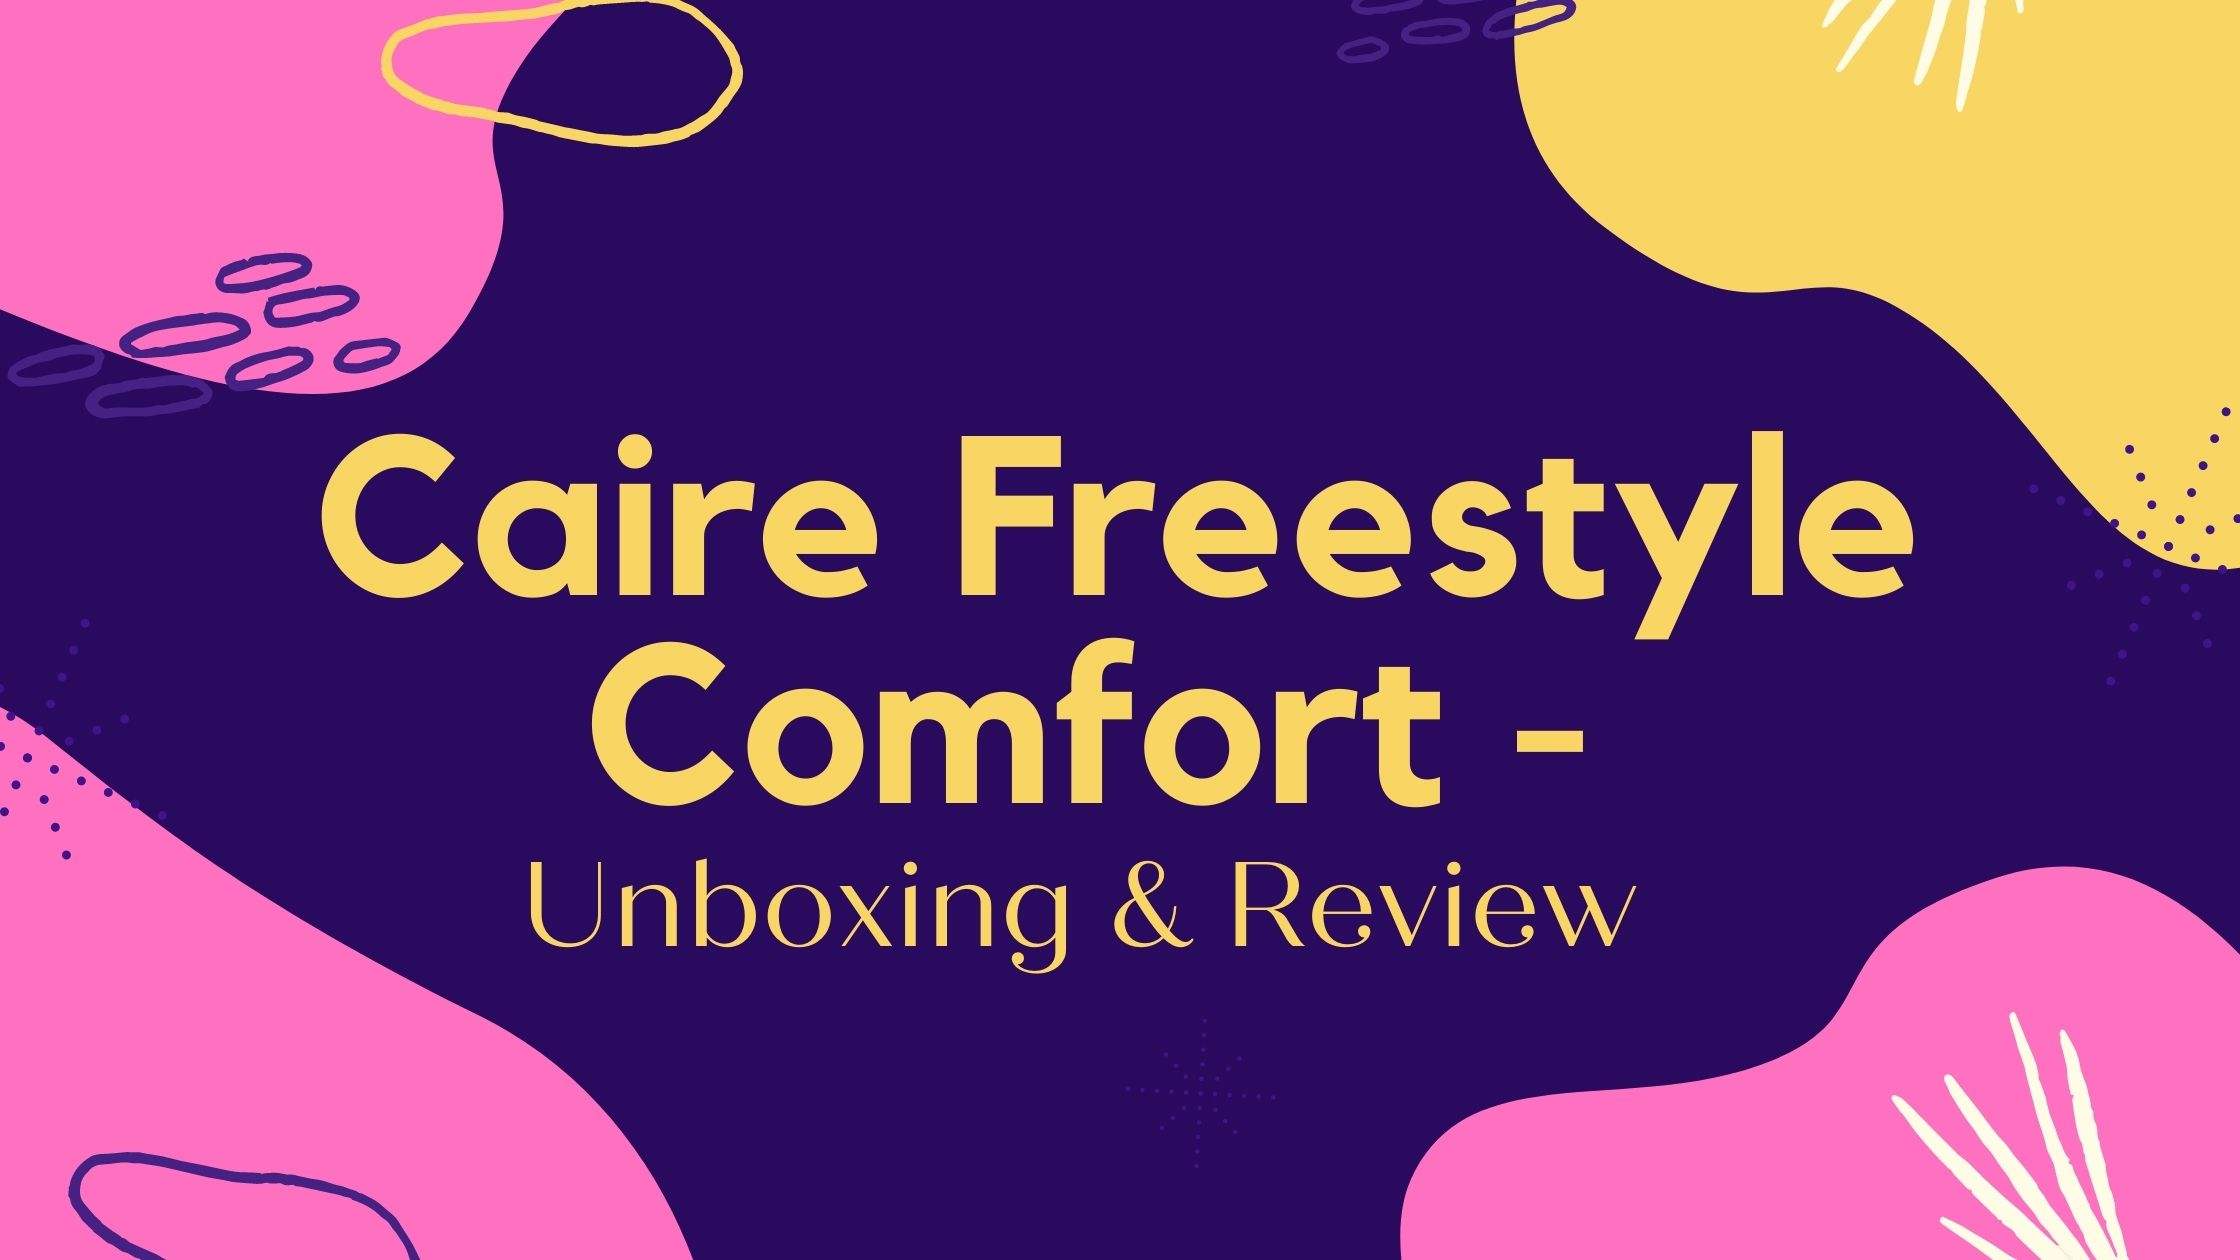 Caire Freestyle Comfort - Unboxing & Review